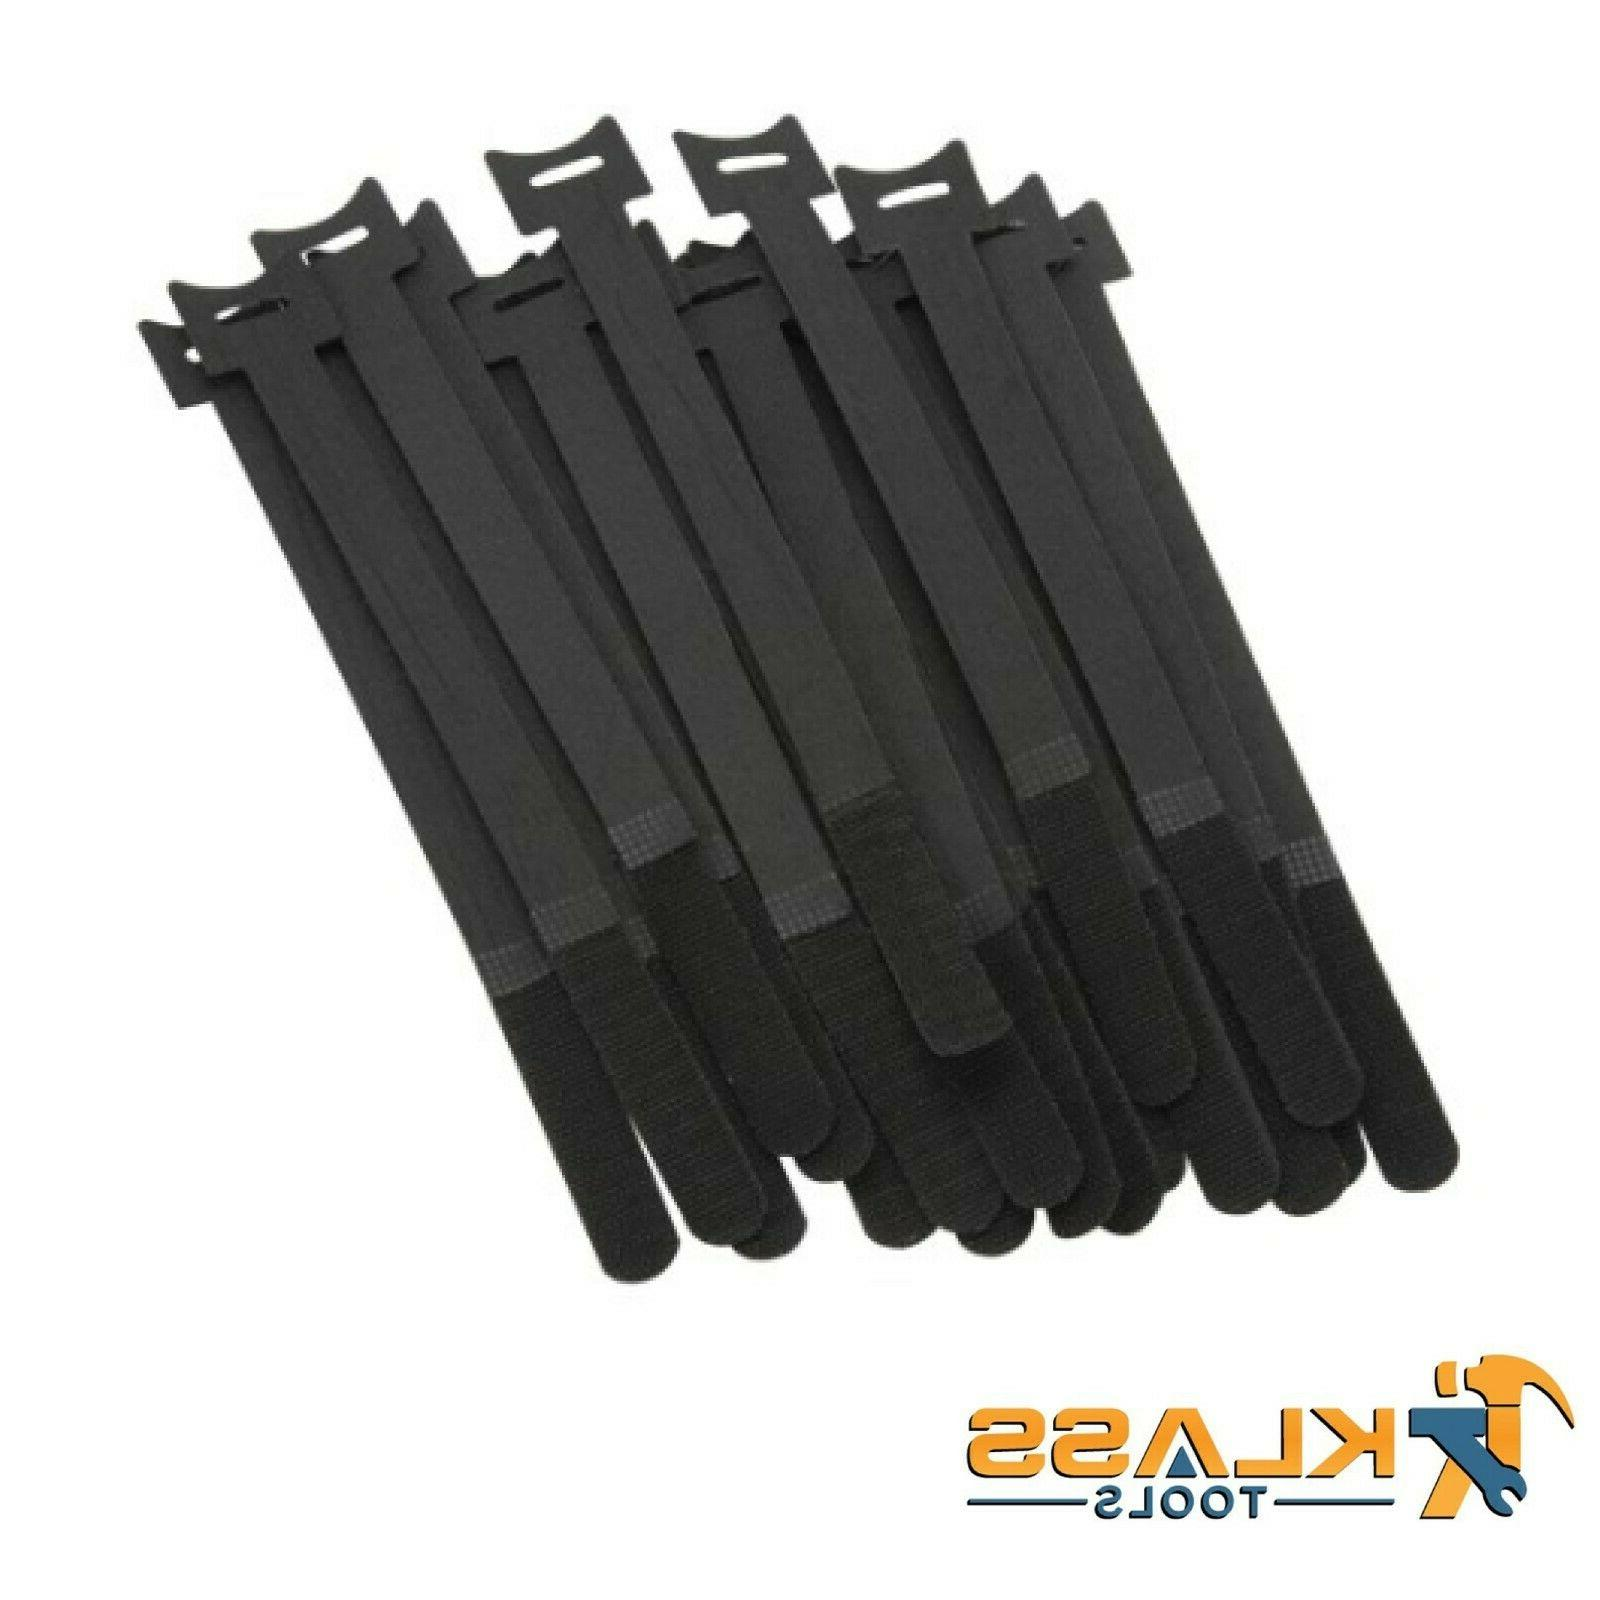 10 in black cable ties with velcro